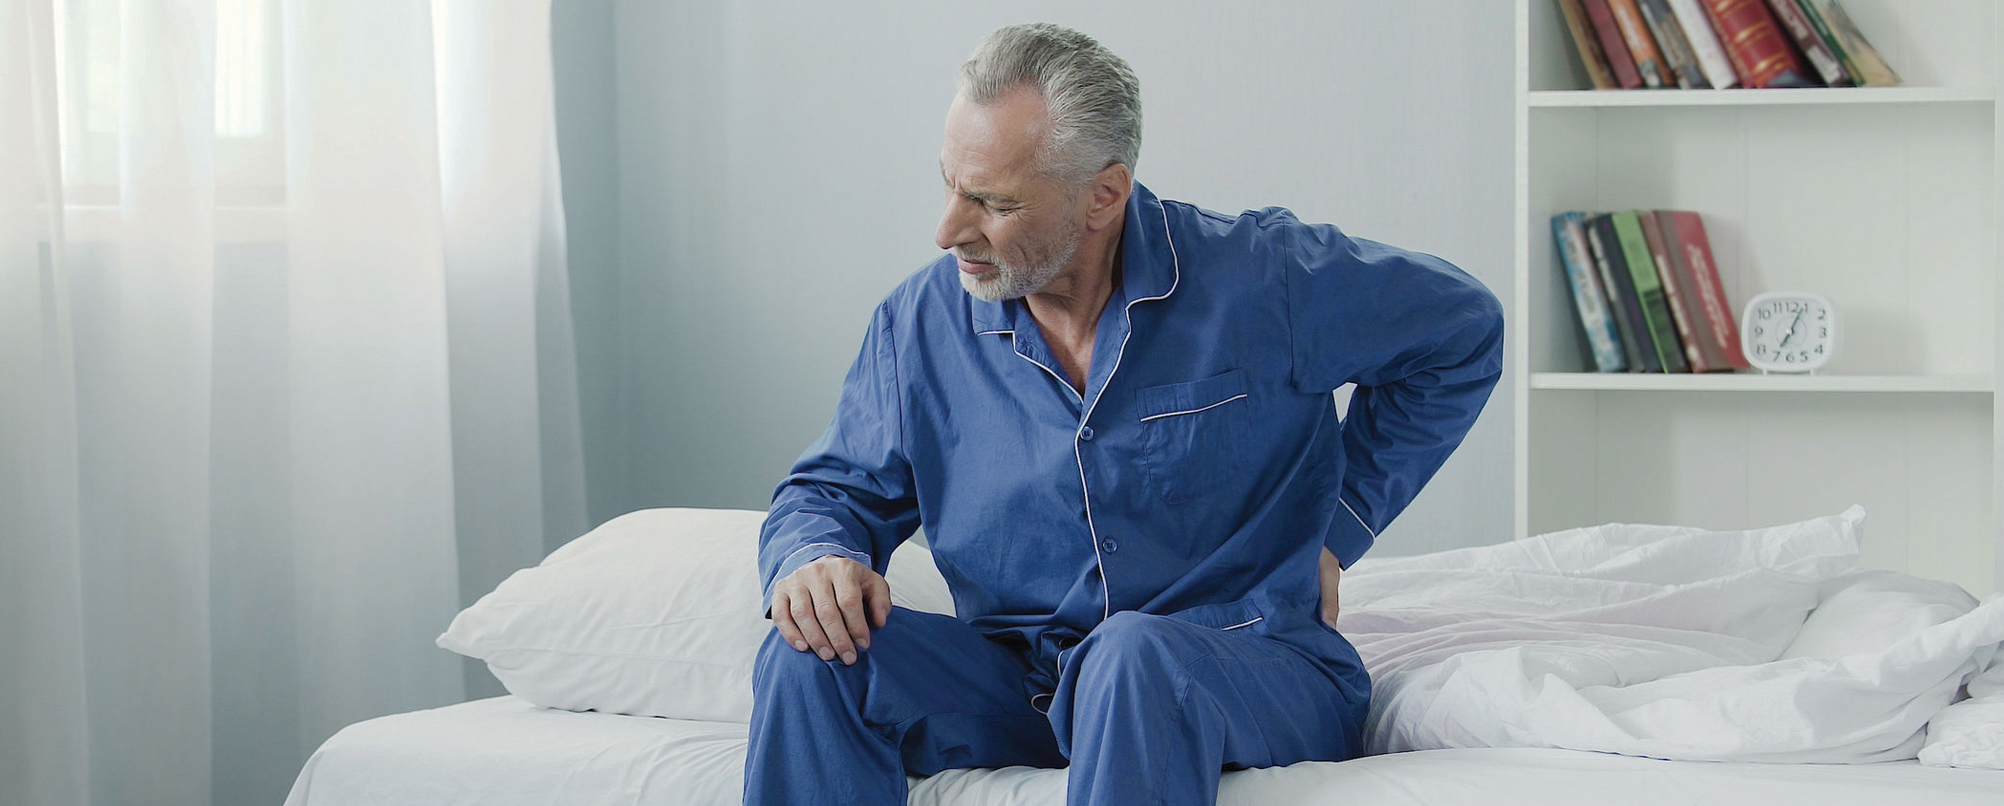 Senior man in bed wakes up with back pain